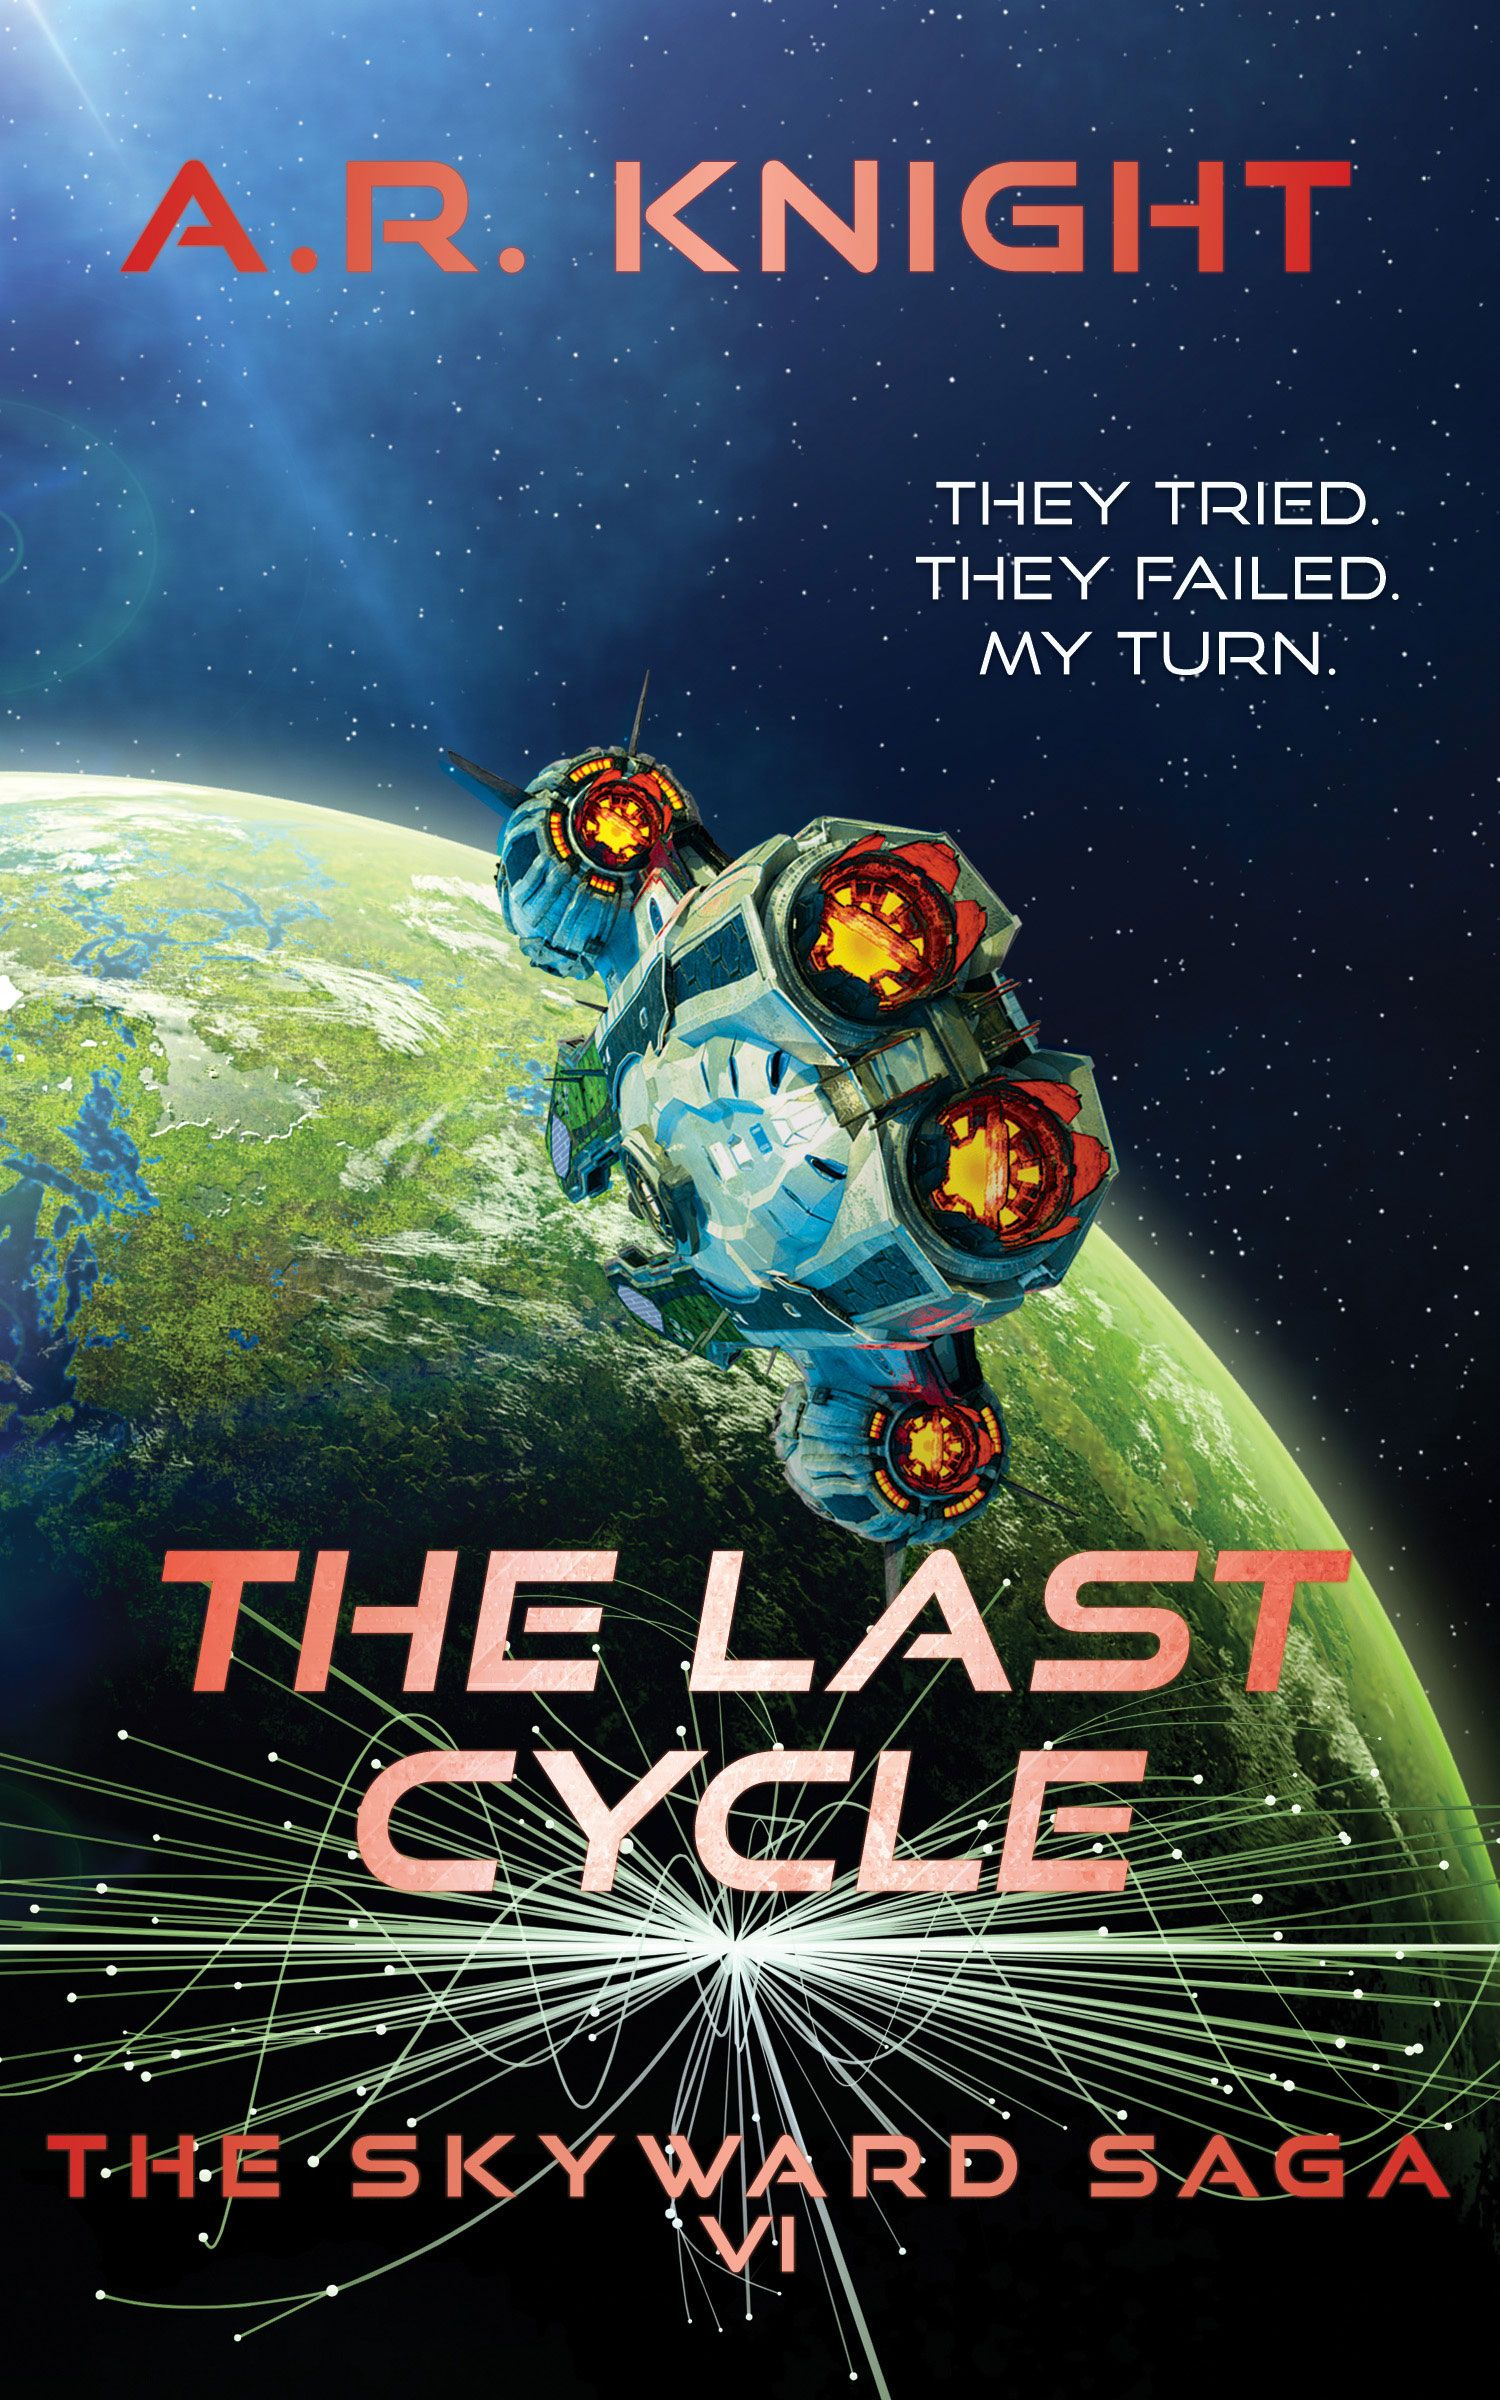 The Last Cycle